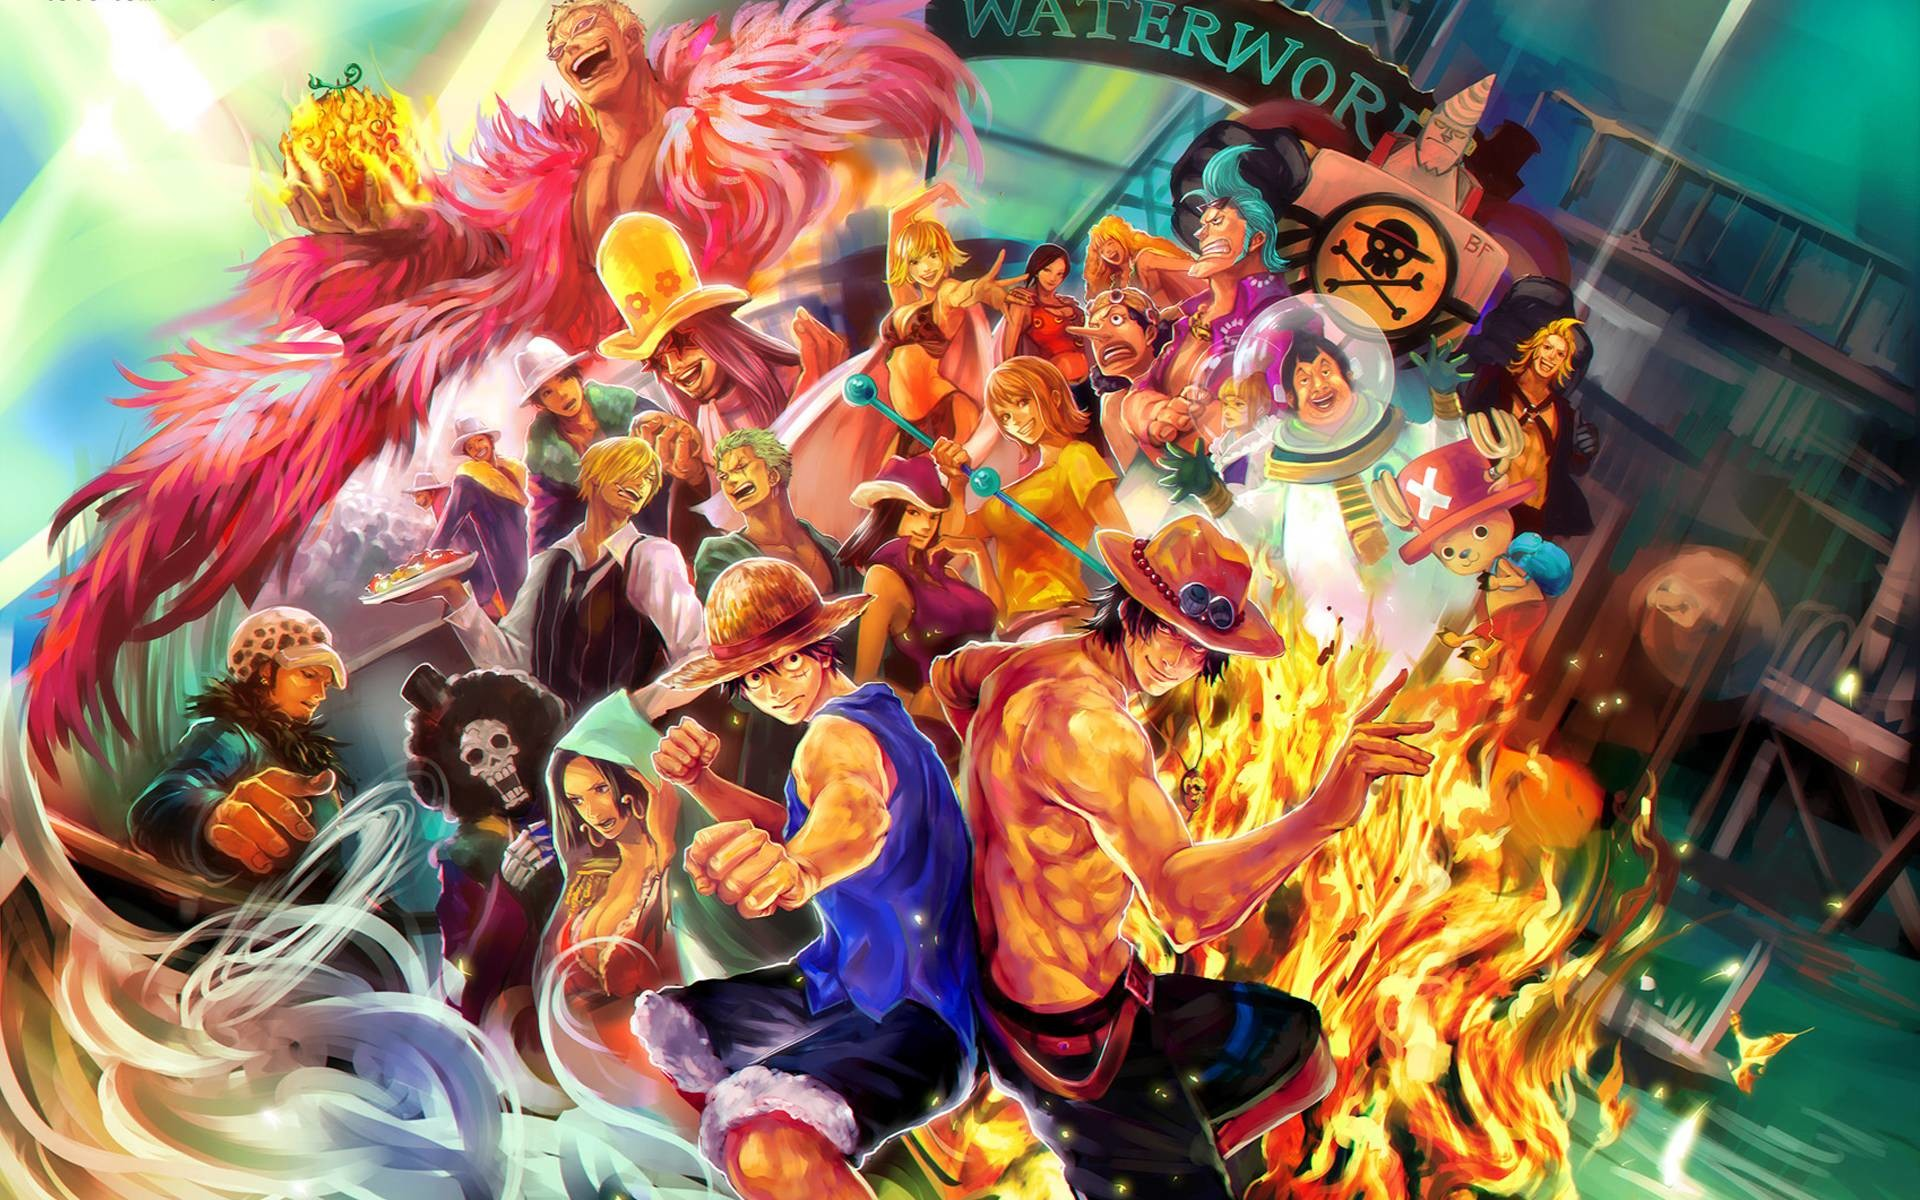 Res: 1920x1200, Wallpaper One Piece 2015 Nami And Law - WallpaperSafari